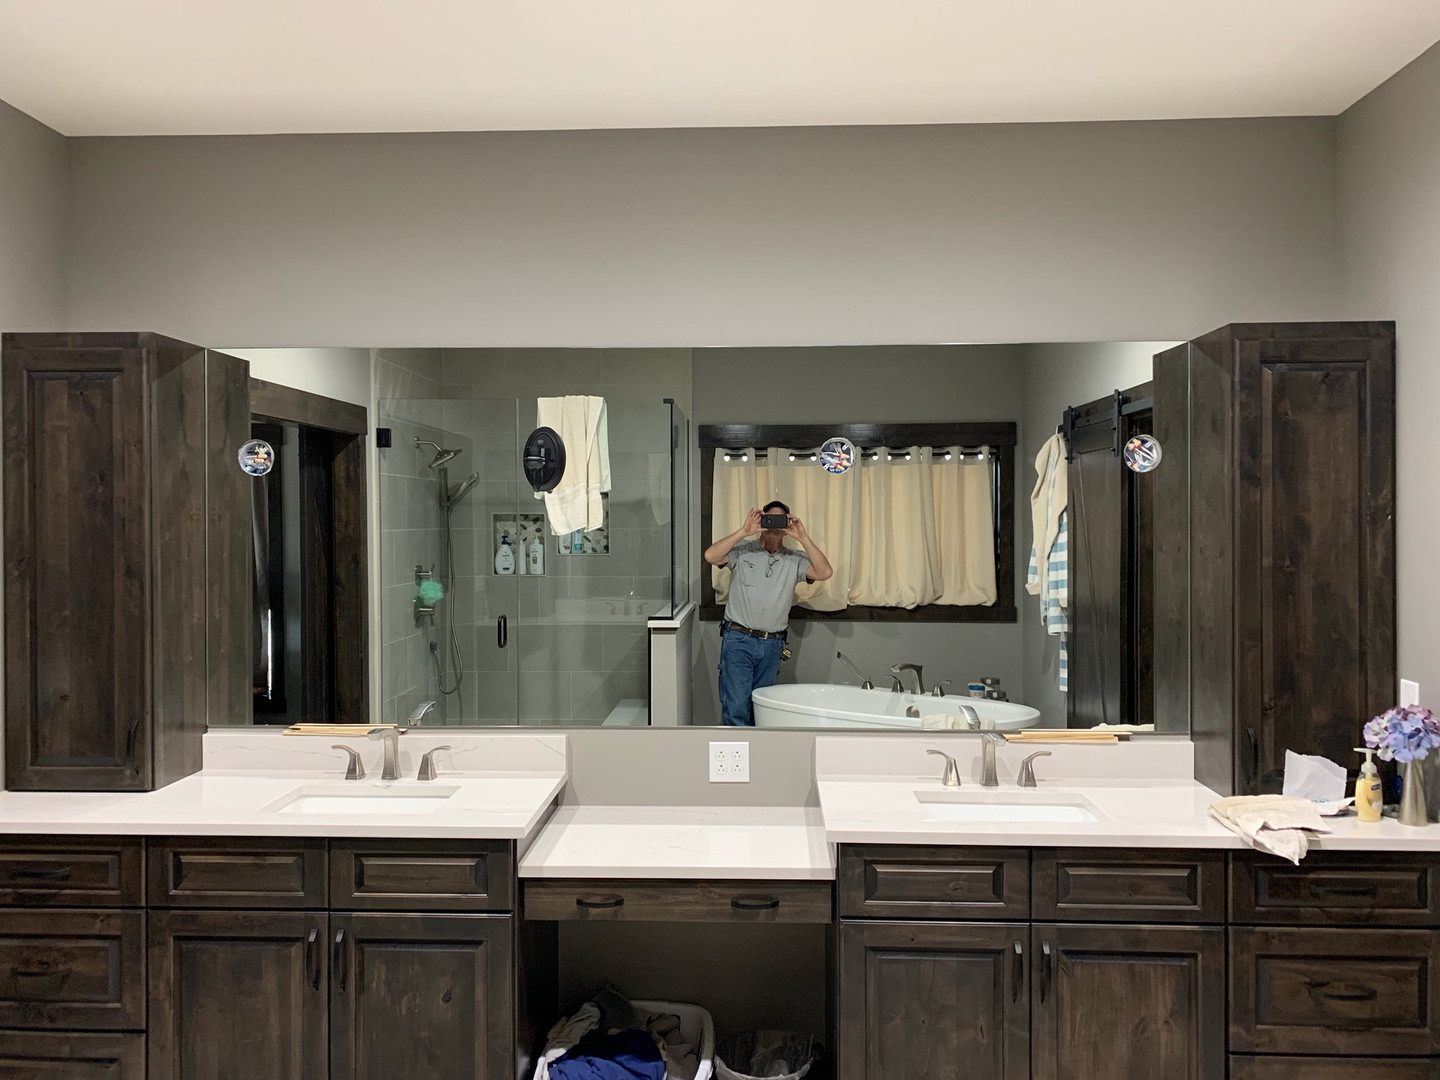 franklin glass and mirror - professional mirror installation